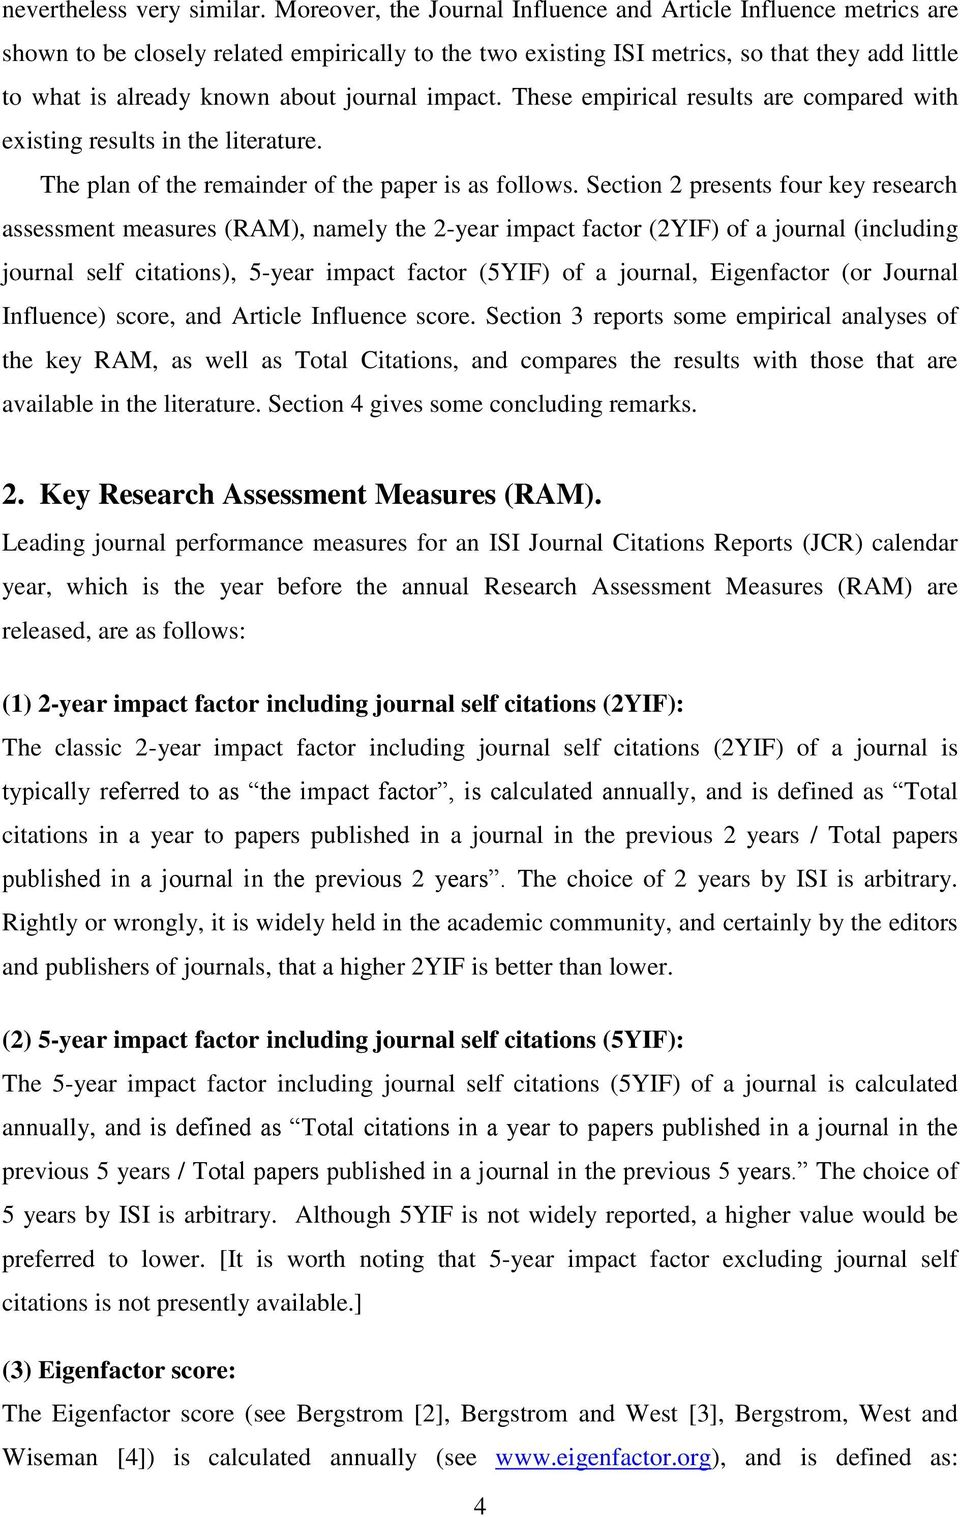 journal impact. These empirical results are compared with existing results in the literature. The plan of the remainder of the paper is as follows.